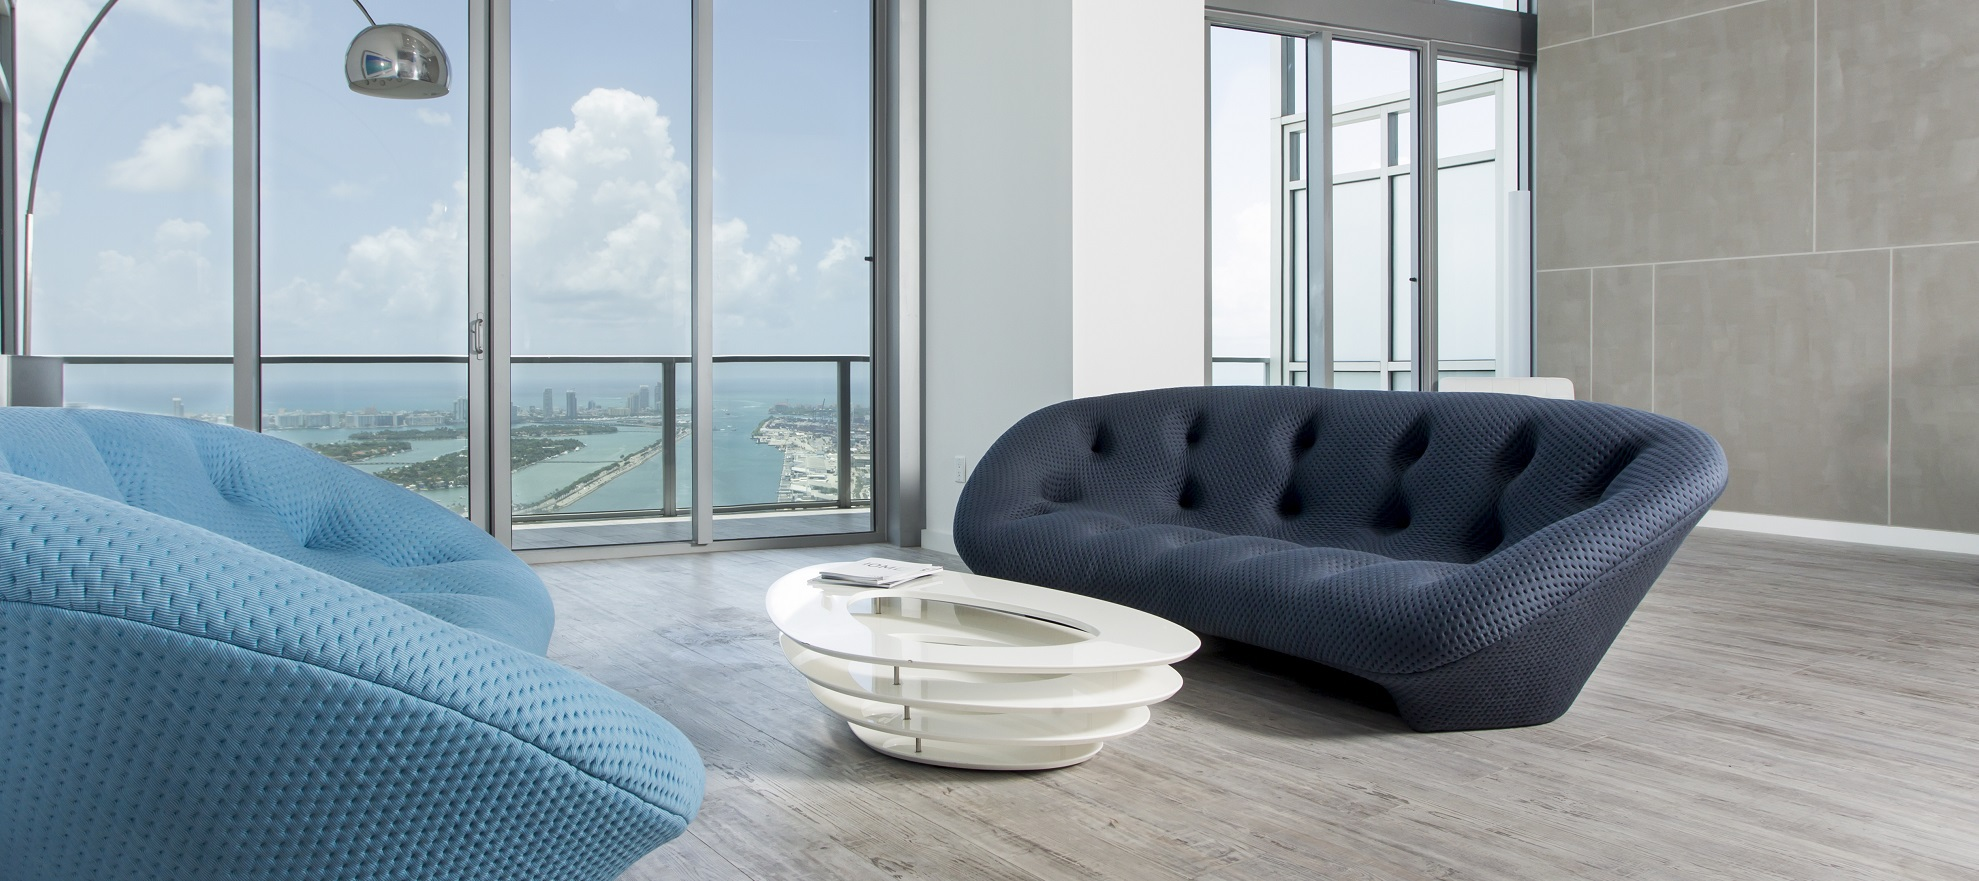 Luxury listing: Sky-high loft in downtown Miami